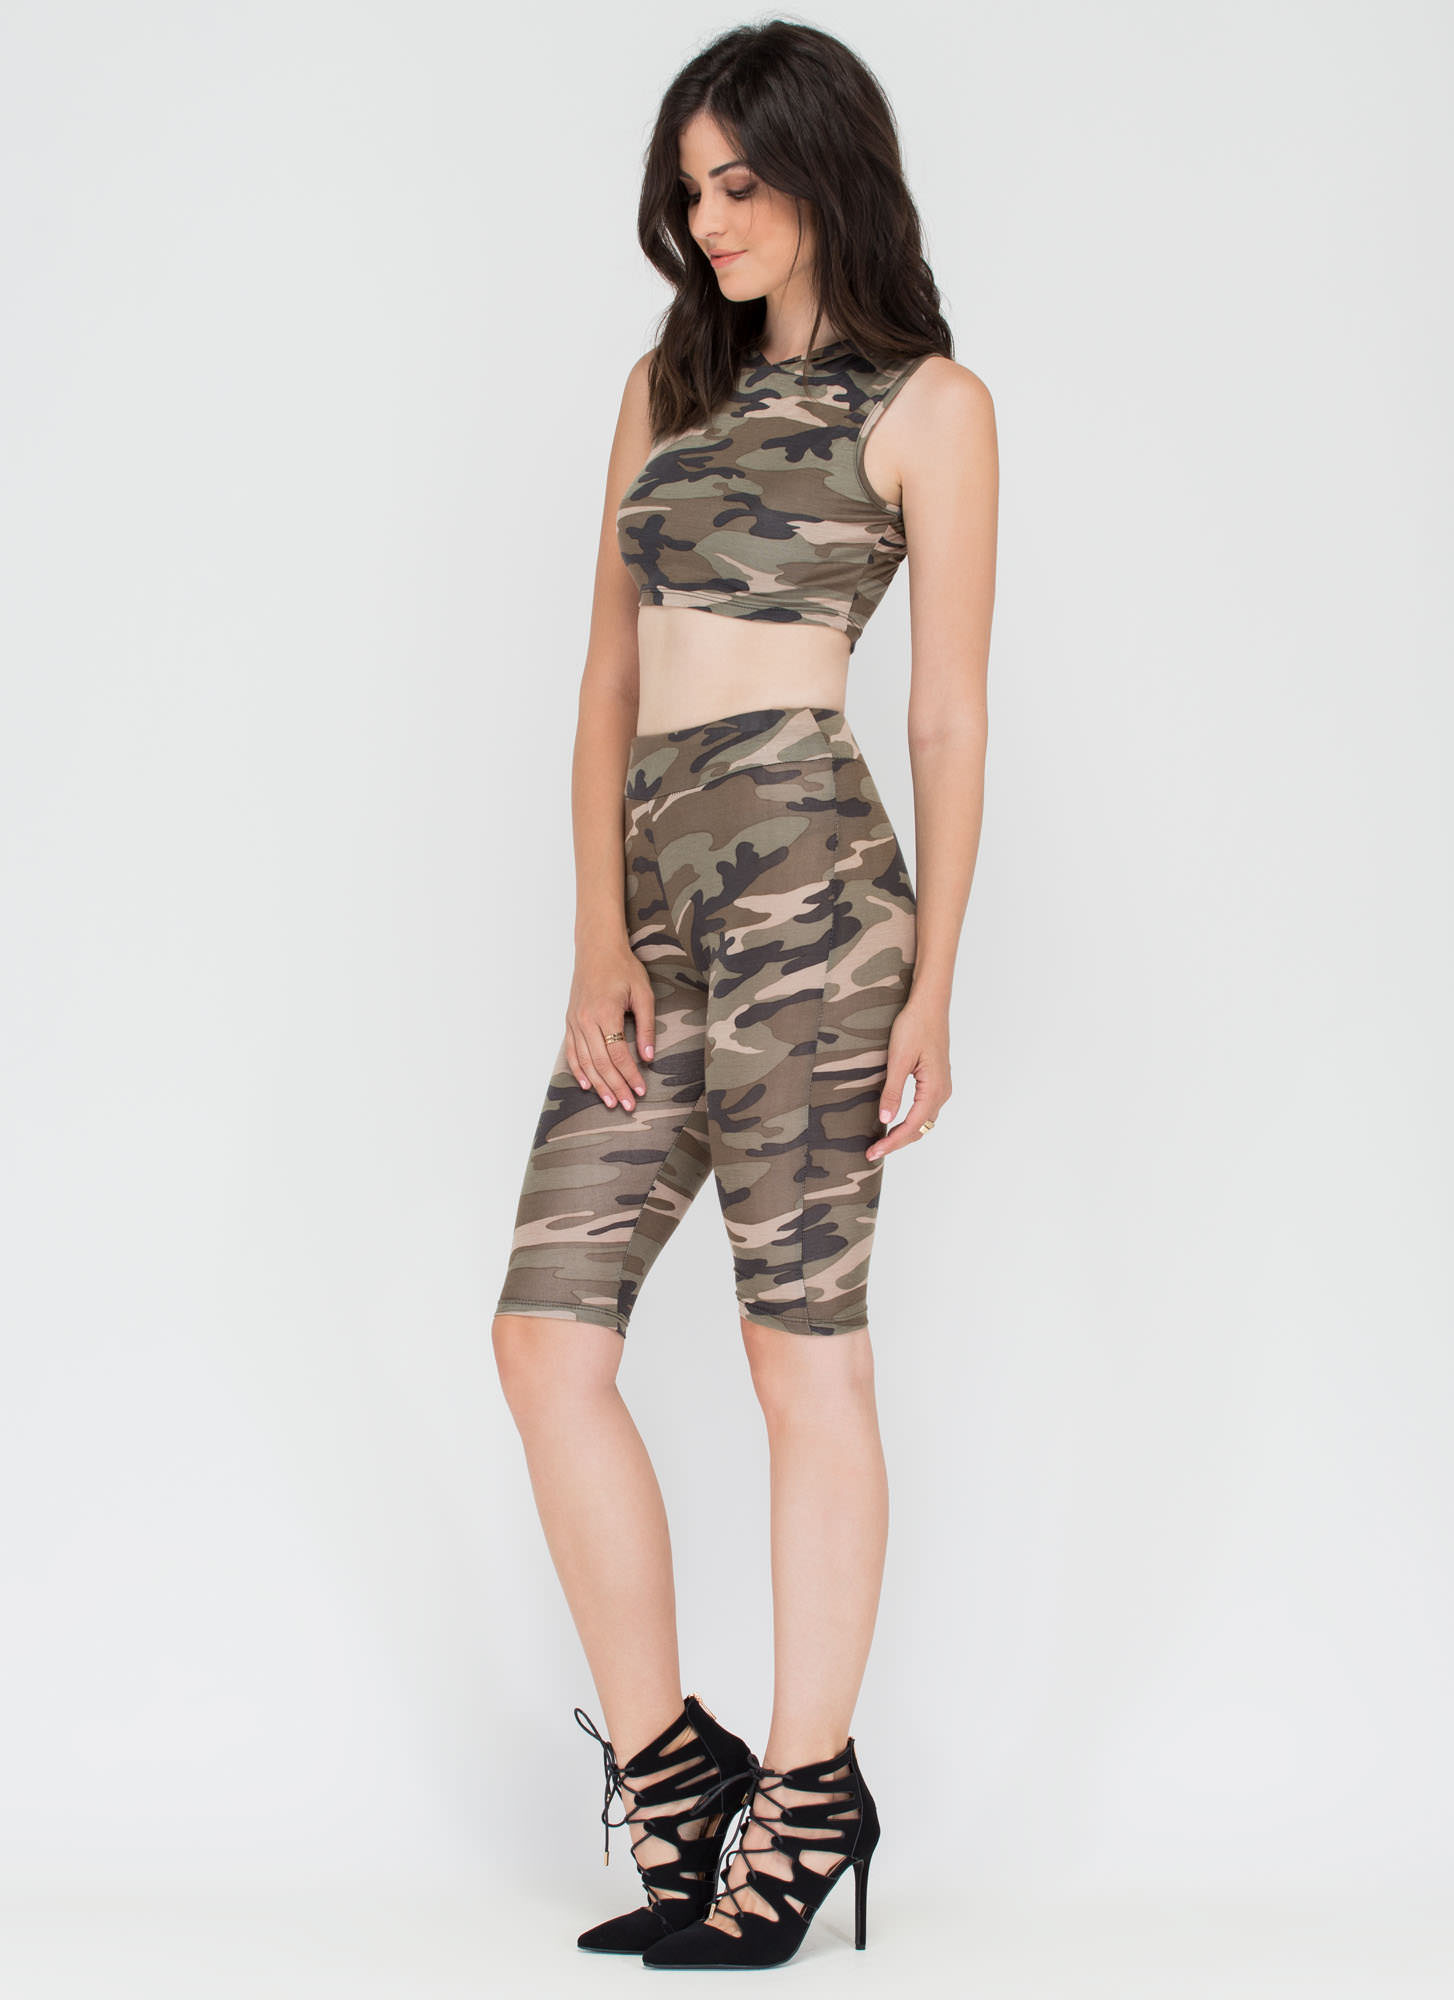 On A Mission Camo Crop Top 'N Shorts Set CAMOUFLAGE